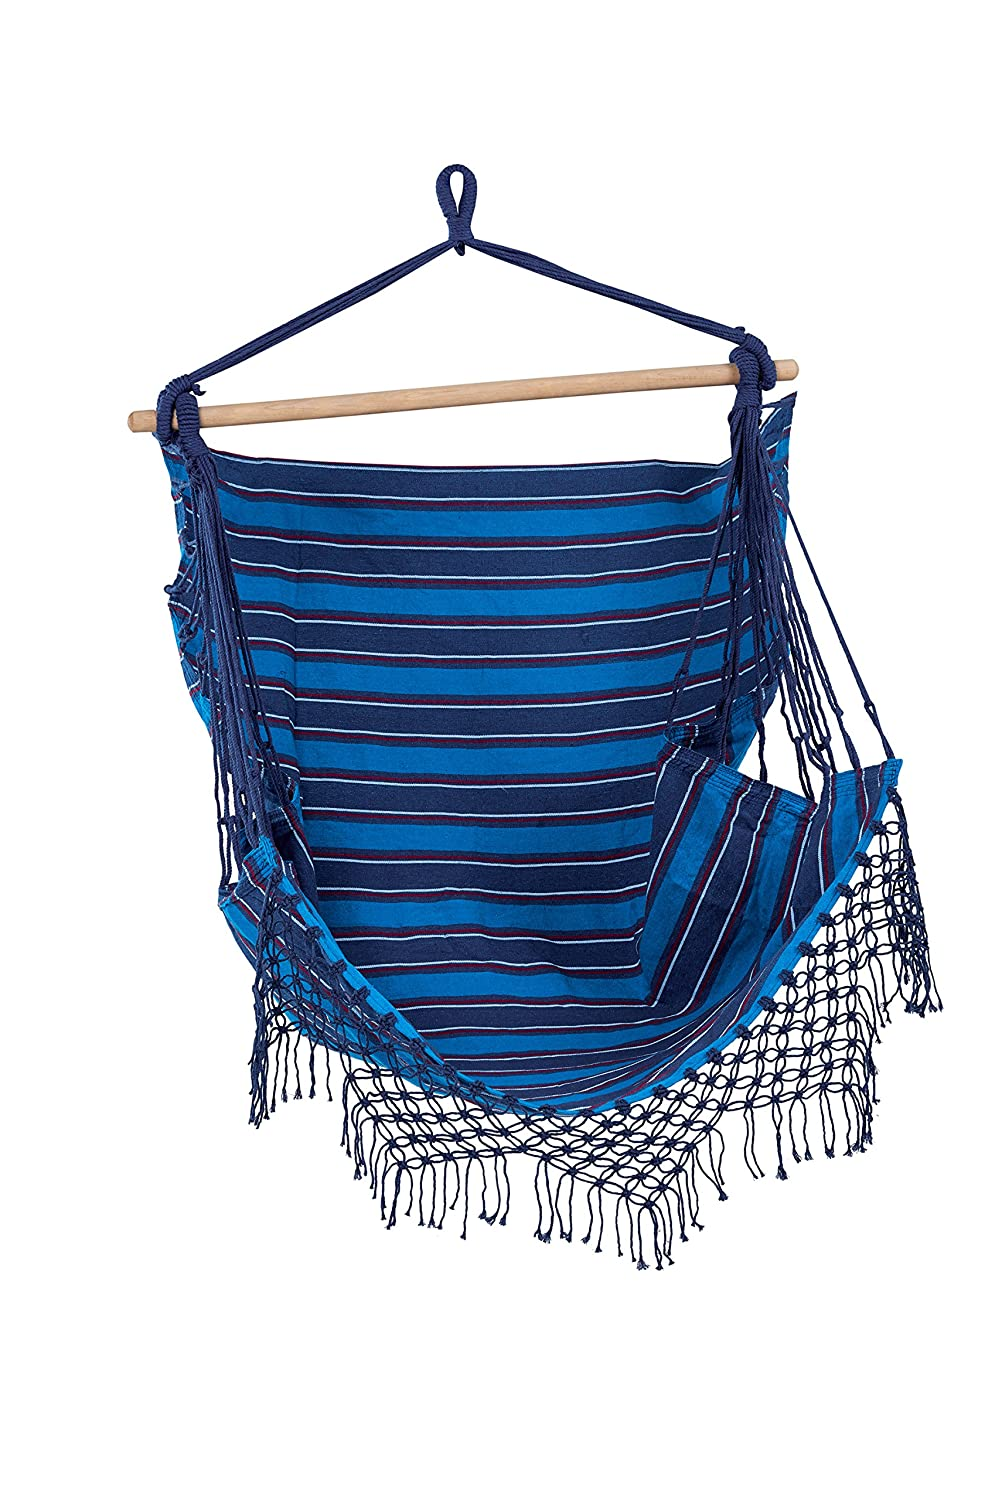 Sedia Amaca Deluxe Brazilian - Amaca a poltrona sedia sospesa con supporto - Deluxe Brazilian Hammock Chair FHB-BCH-B 145x120x100cm 2.02kg weight rating 110kg Durable, soft-touch 100% Cotton blend fabric.Swing chair, swinging chair, hanging chair. Solid ti